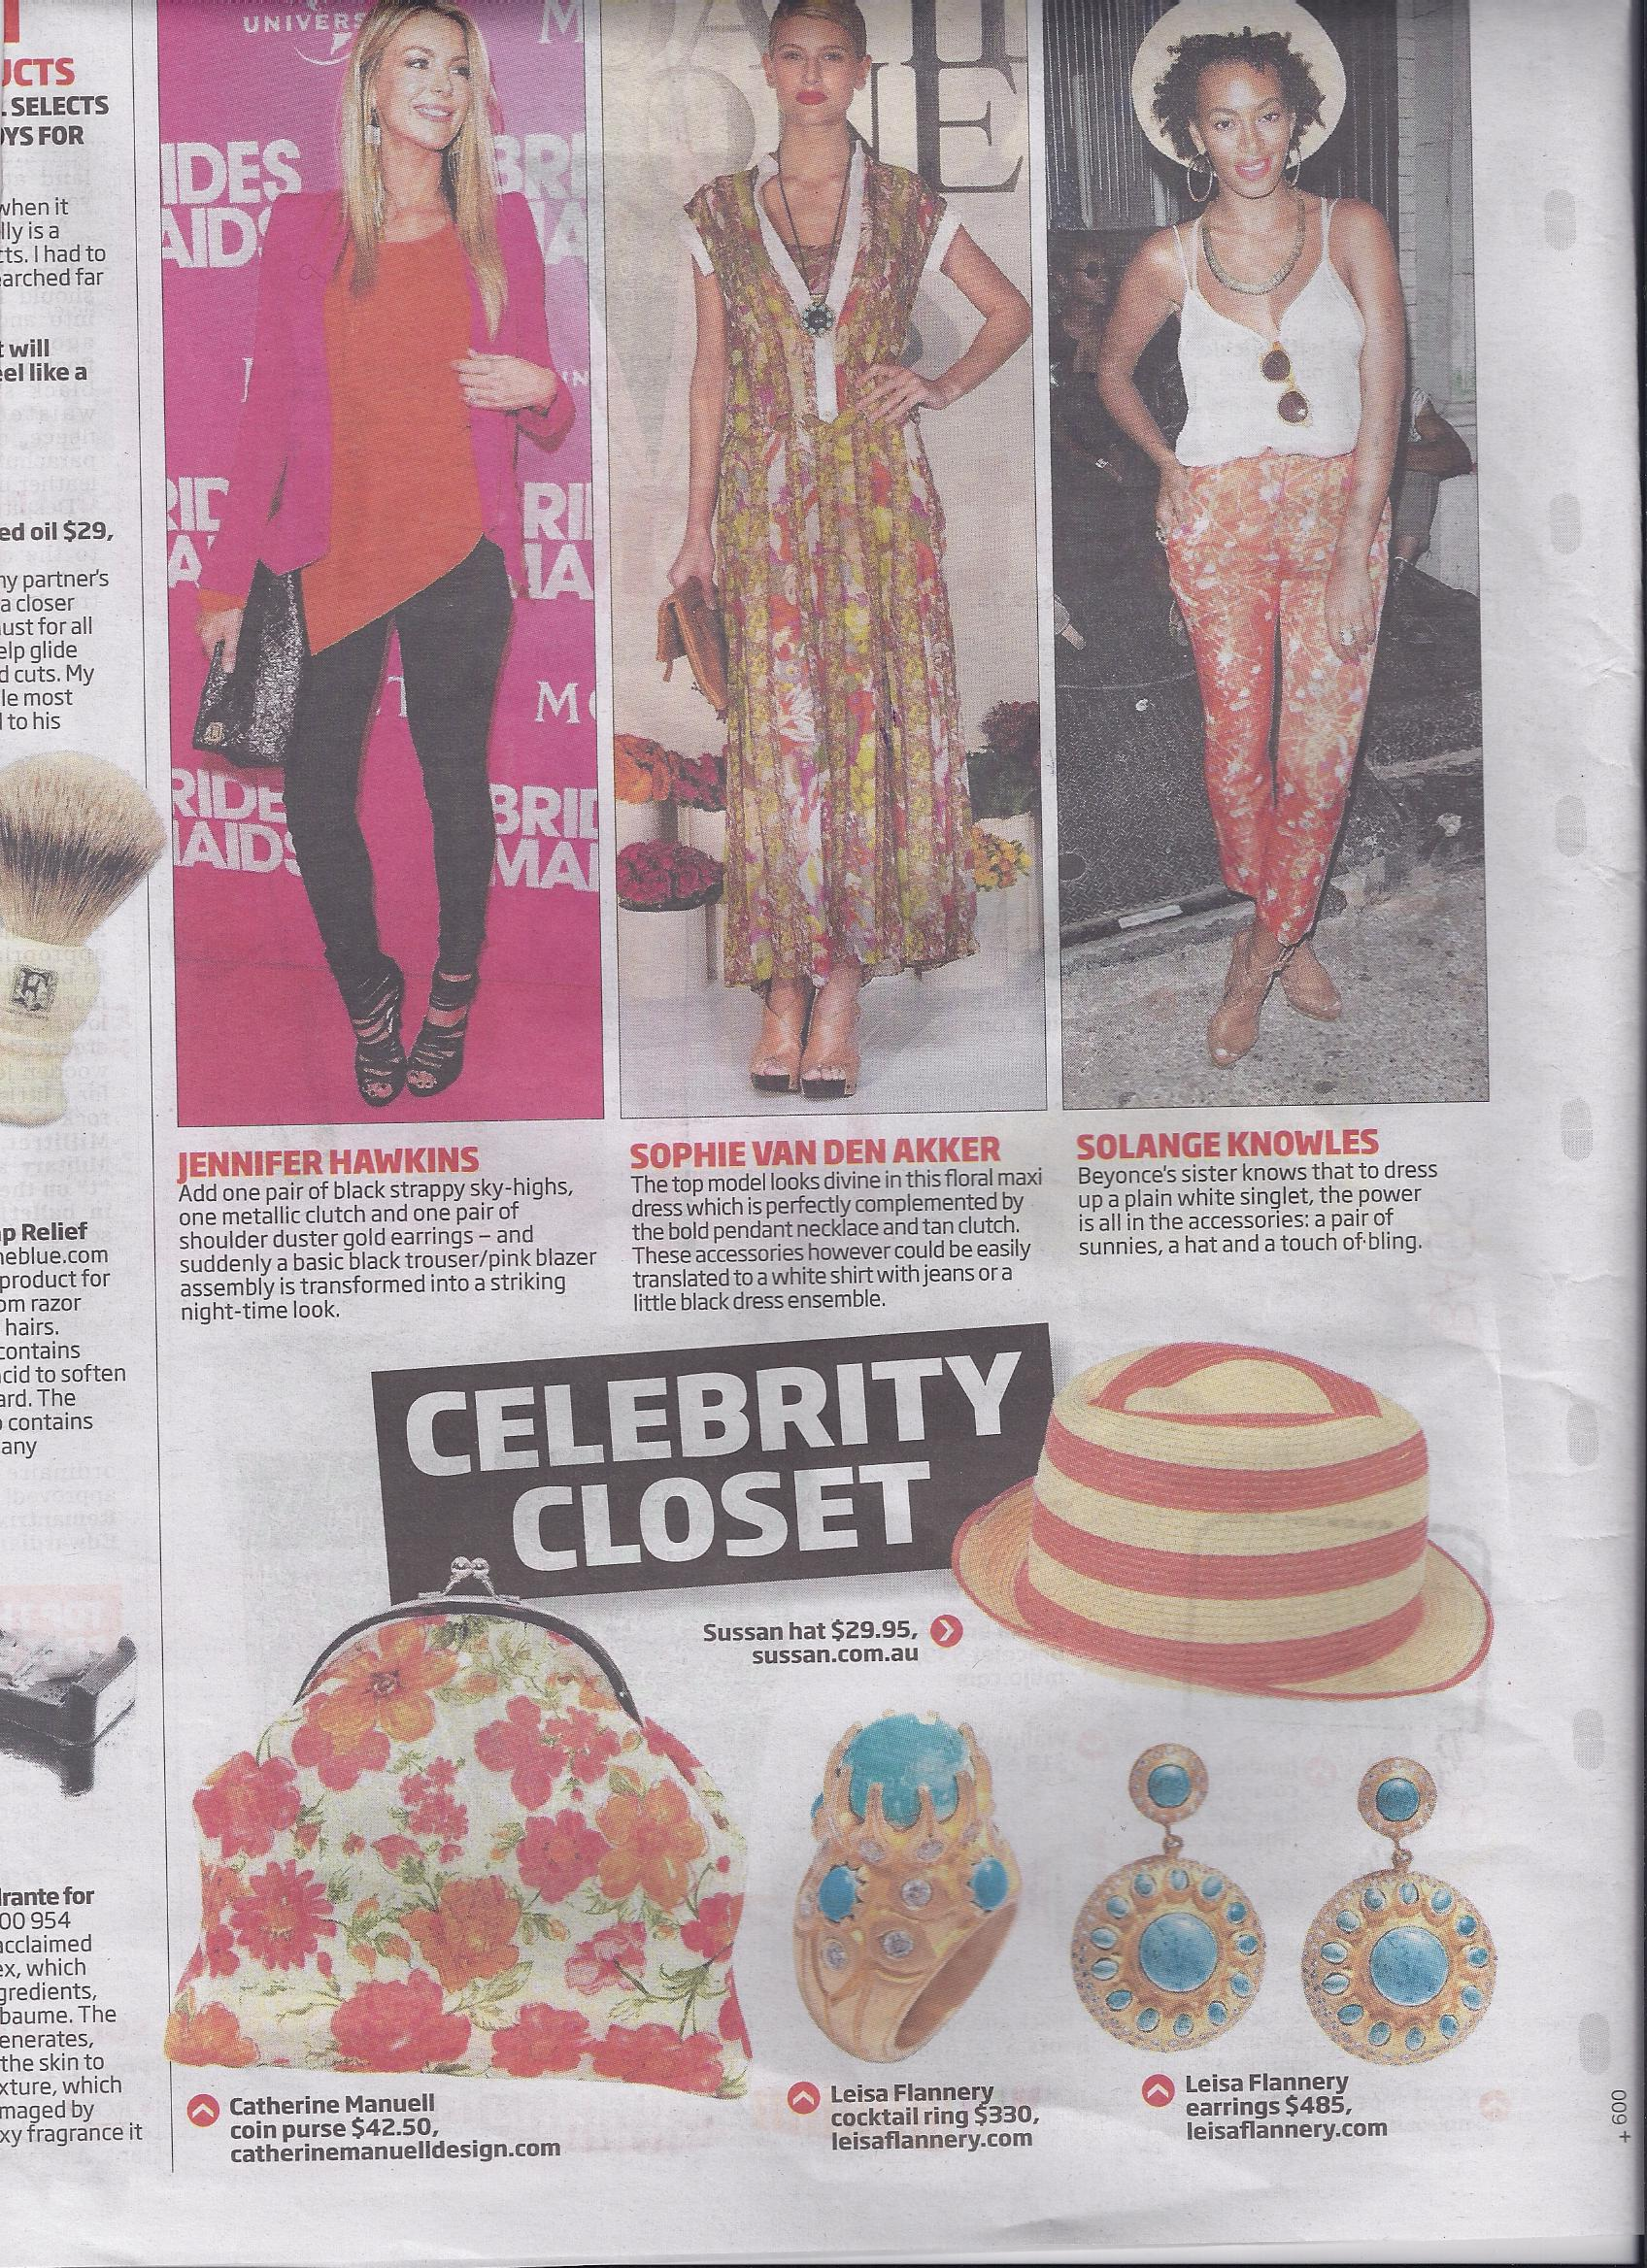 Herald sun cocktail ring and earrings  21 aug 2011.jpg